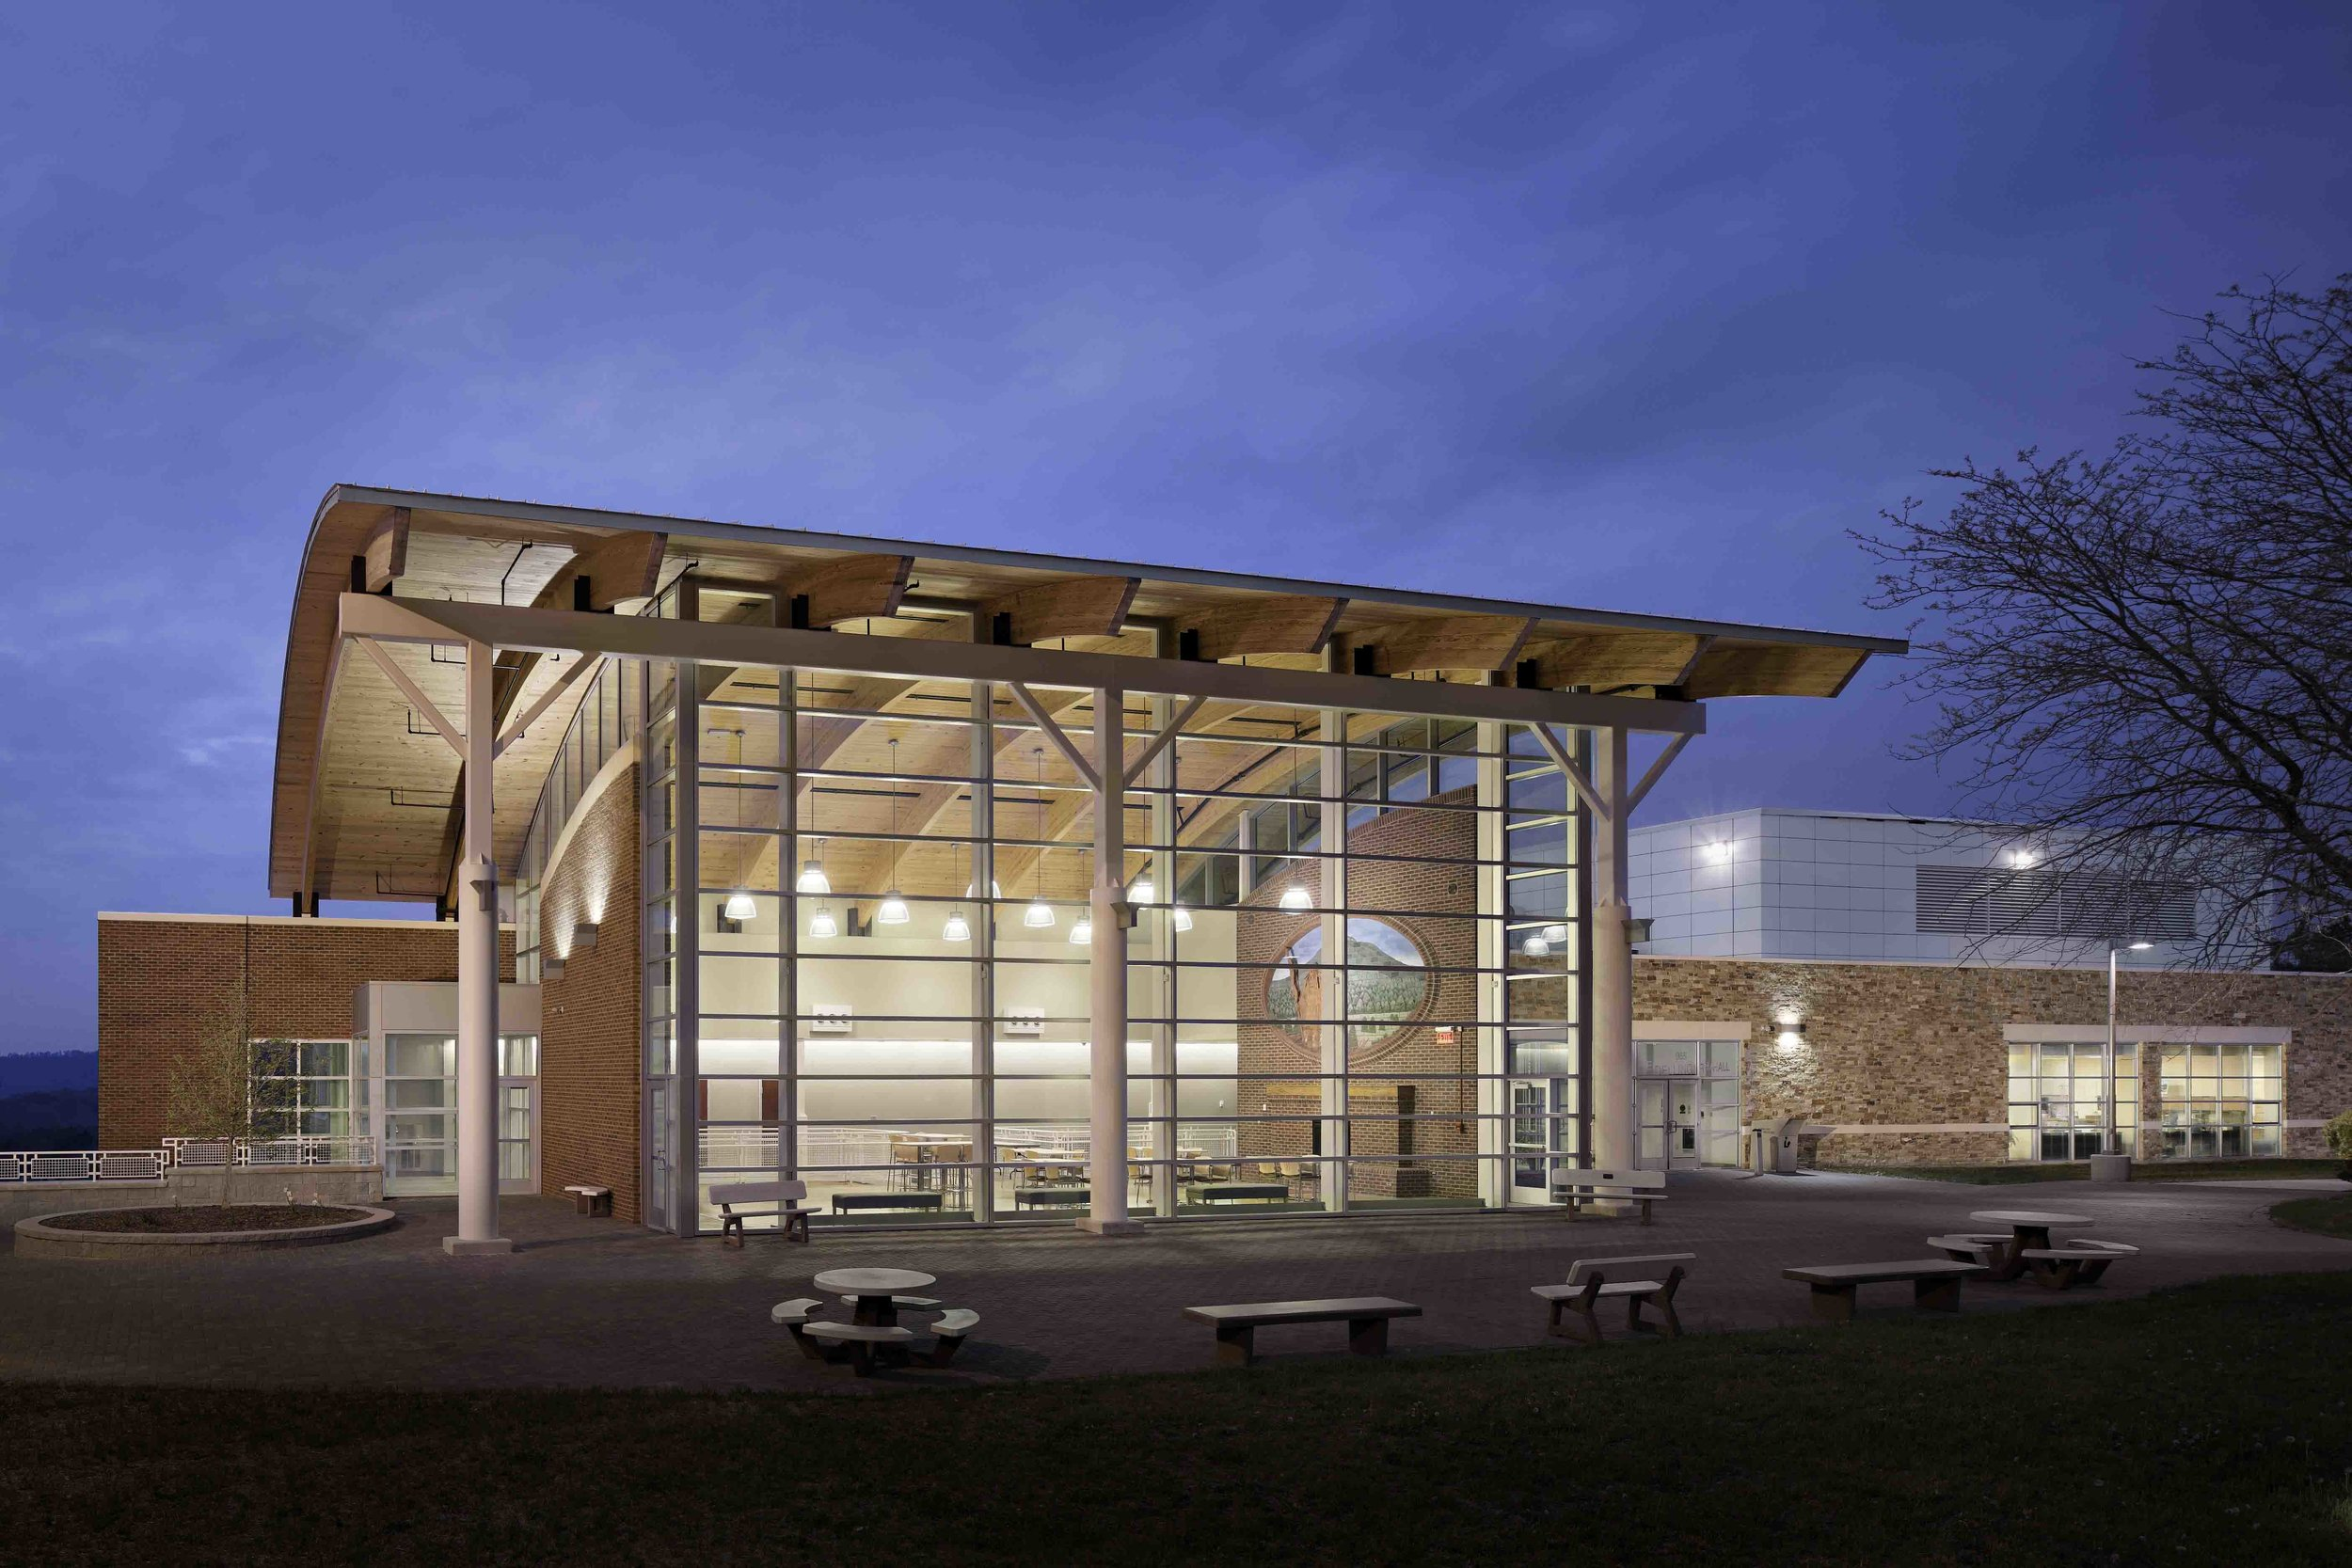 Southwest Virginia Community College Library and Distance Learning Center  Designed by The Lukmire Partnership, Inc. William E Evans, AIA, Principal Designer